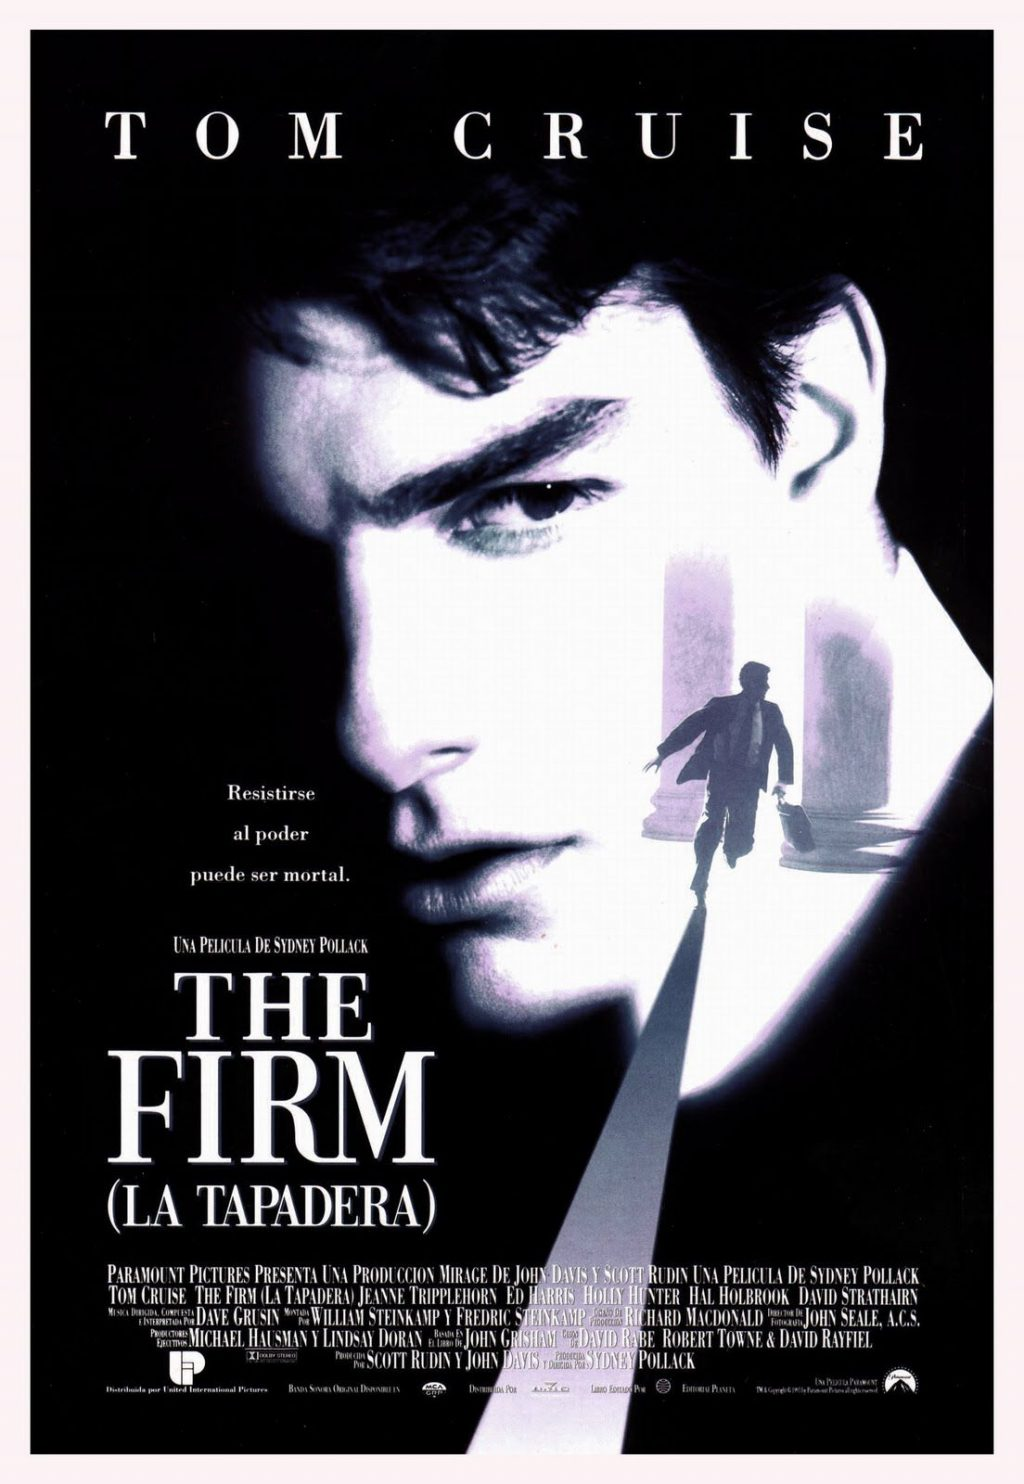 The Firm (La Tapadera)